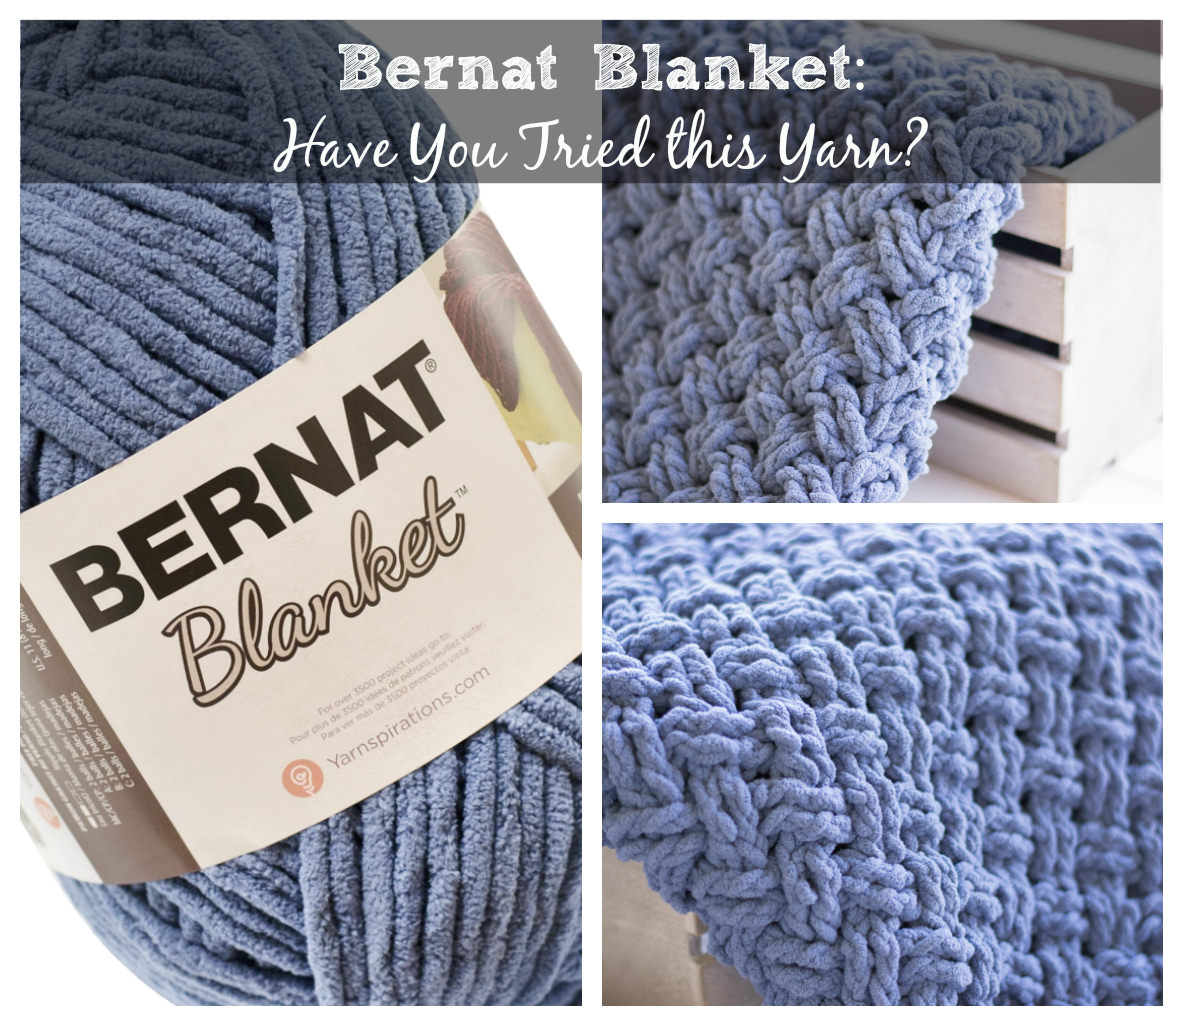 Crochet Patterns Made With Bernat Blanket Yarn : Bernat Blanket: Have you tried this yarn? ? The Crochet Cafe